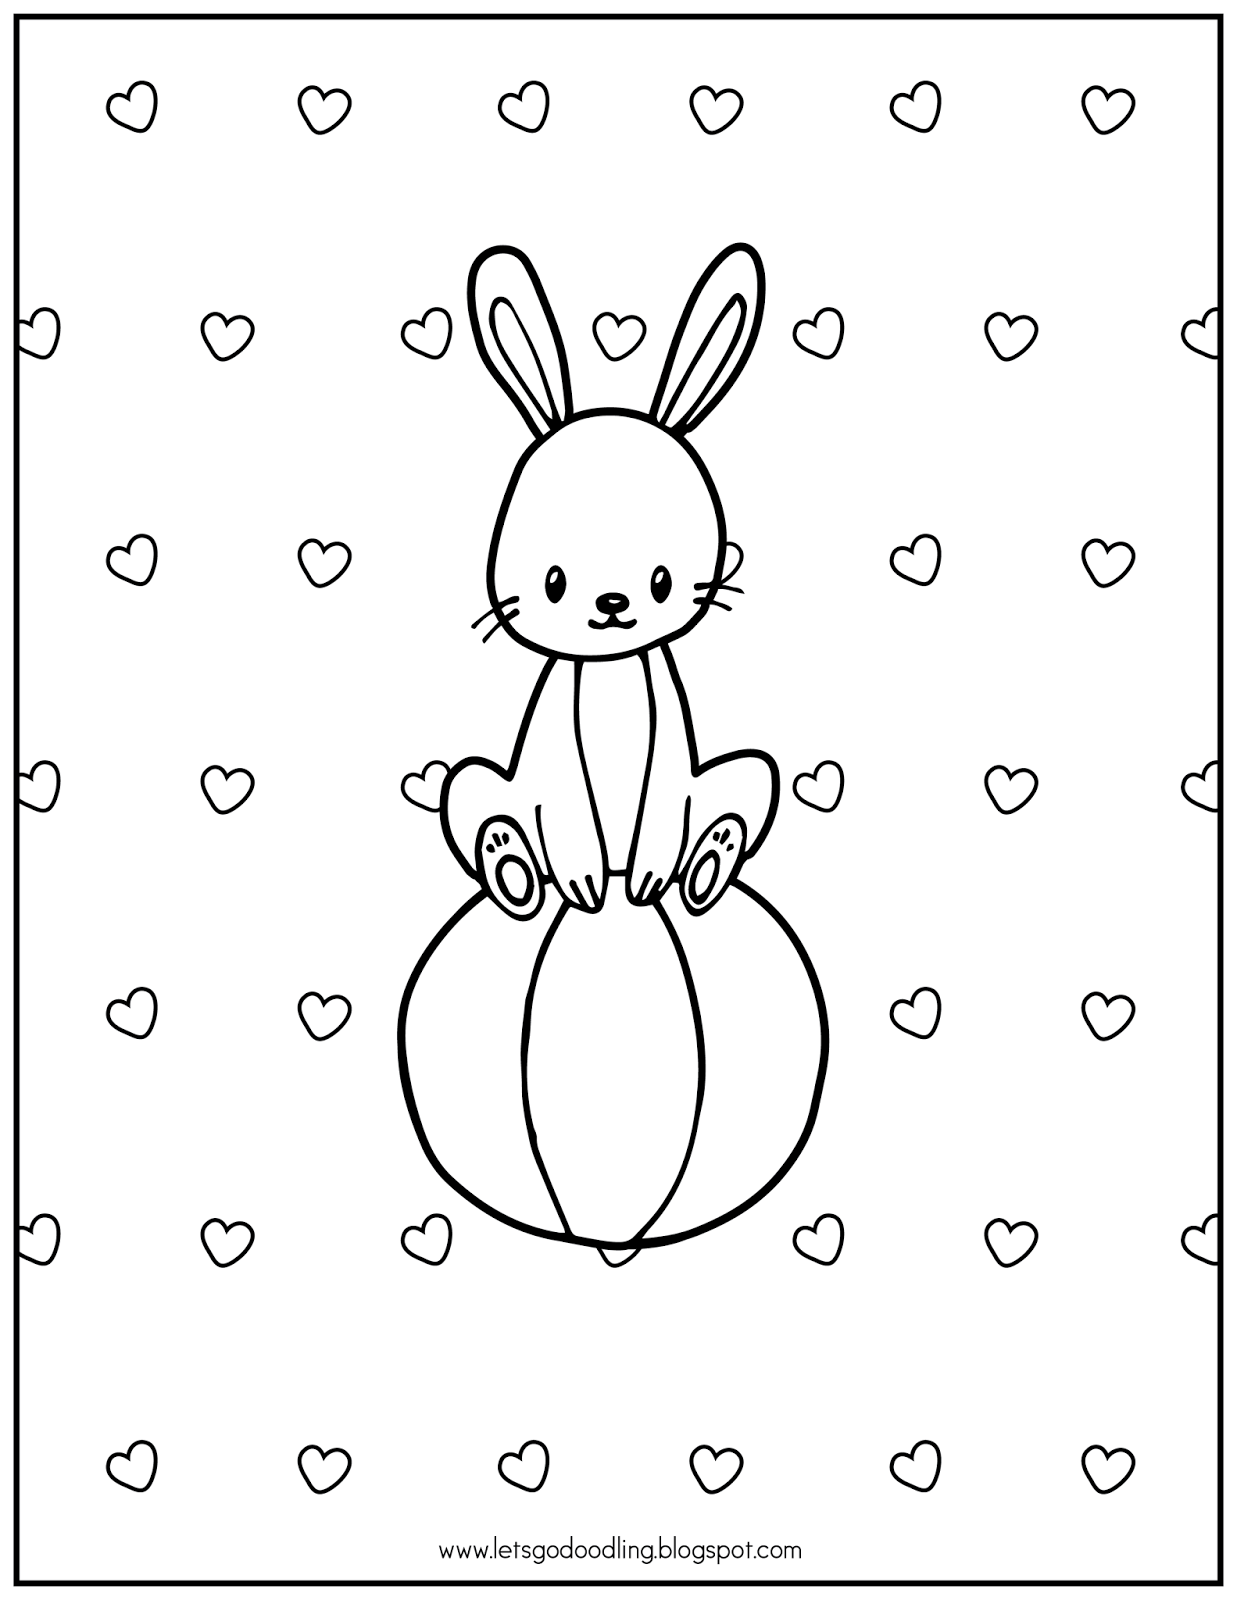 FREE Printable Coloring Page: Rabbit Sitting on a Ball